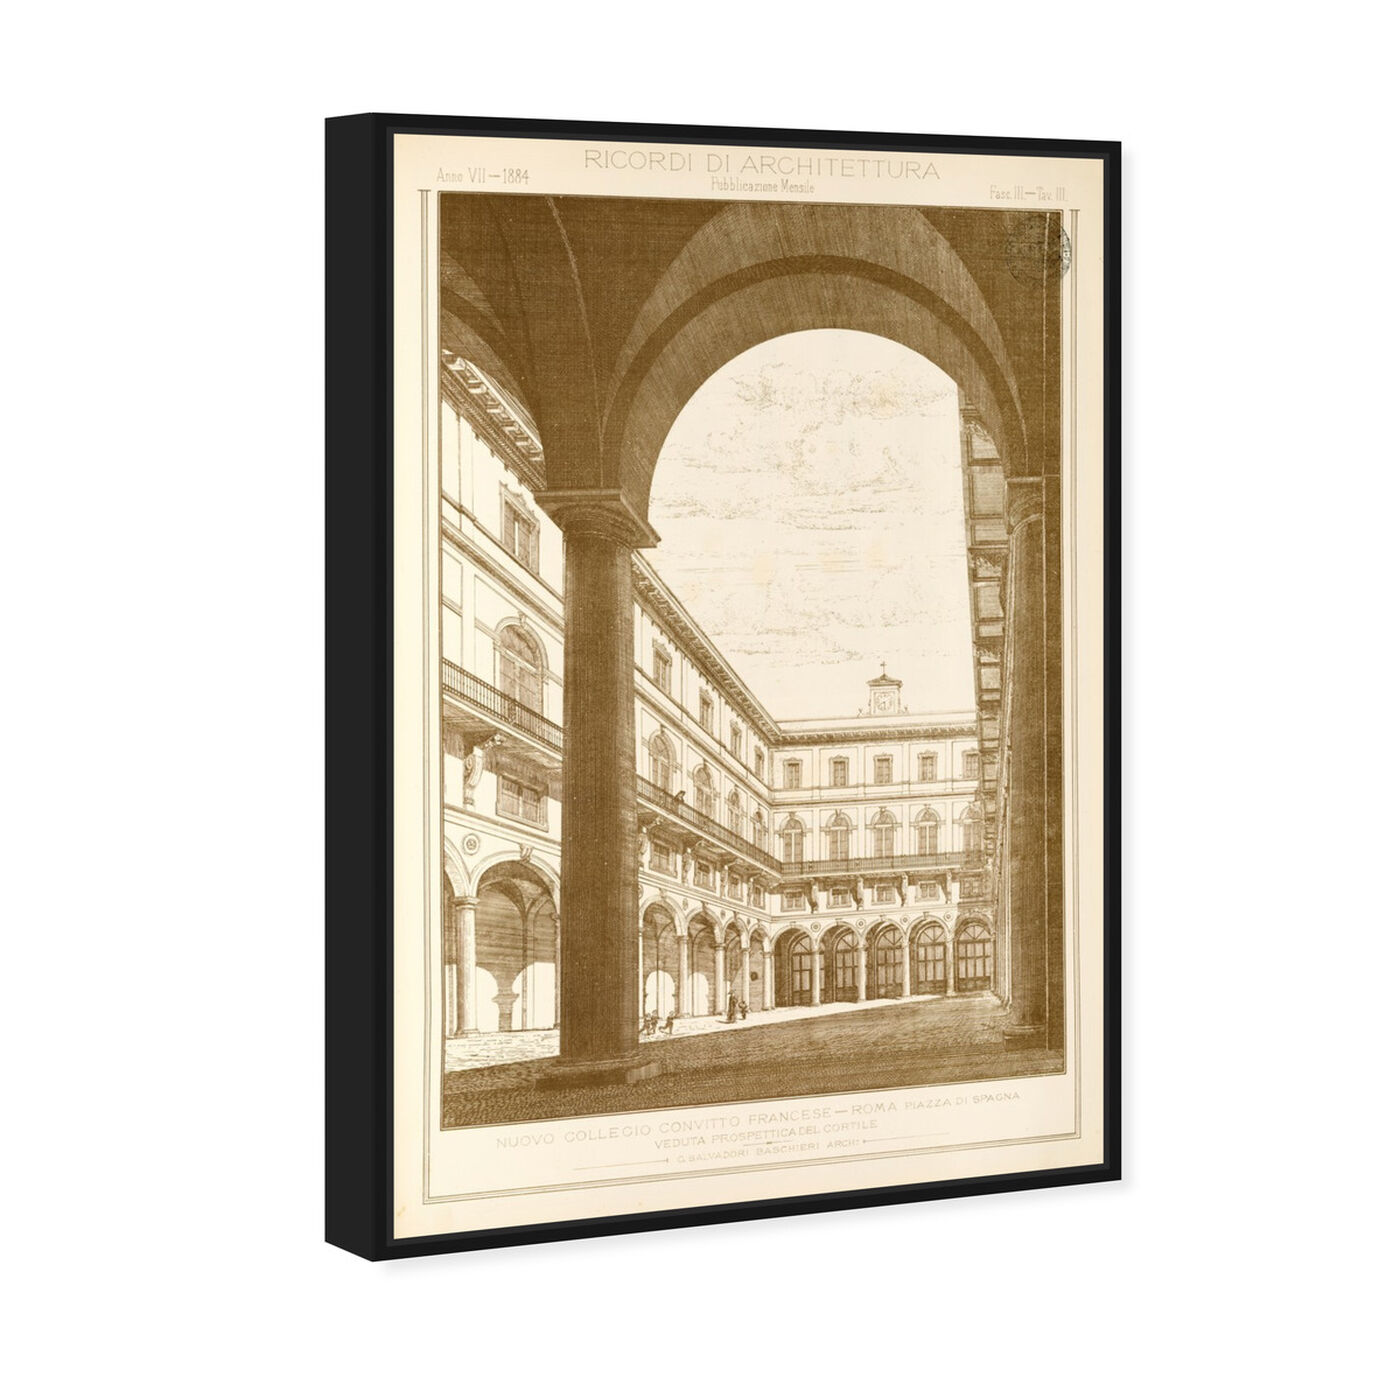 Angled view of Roma Piazza di Spacna - The Art Cabinet featuring architecture and buildings and structures art.